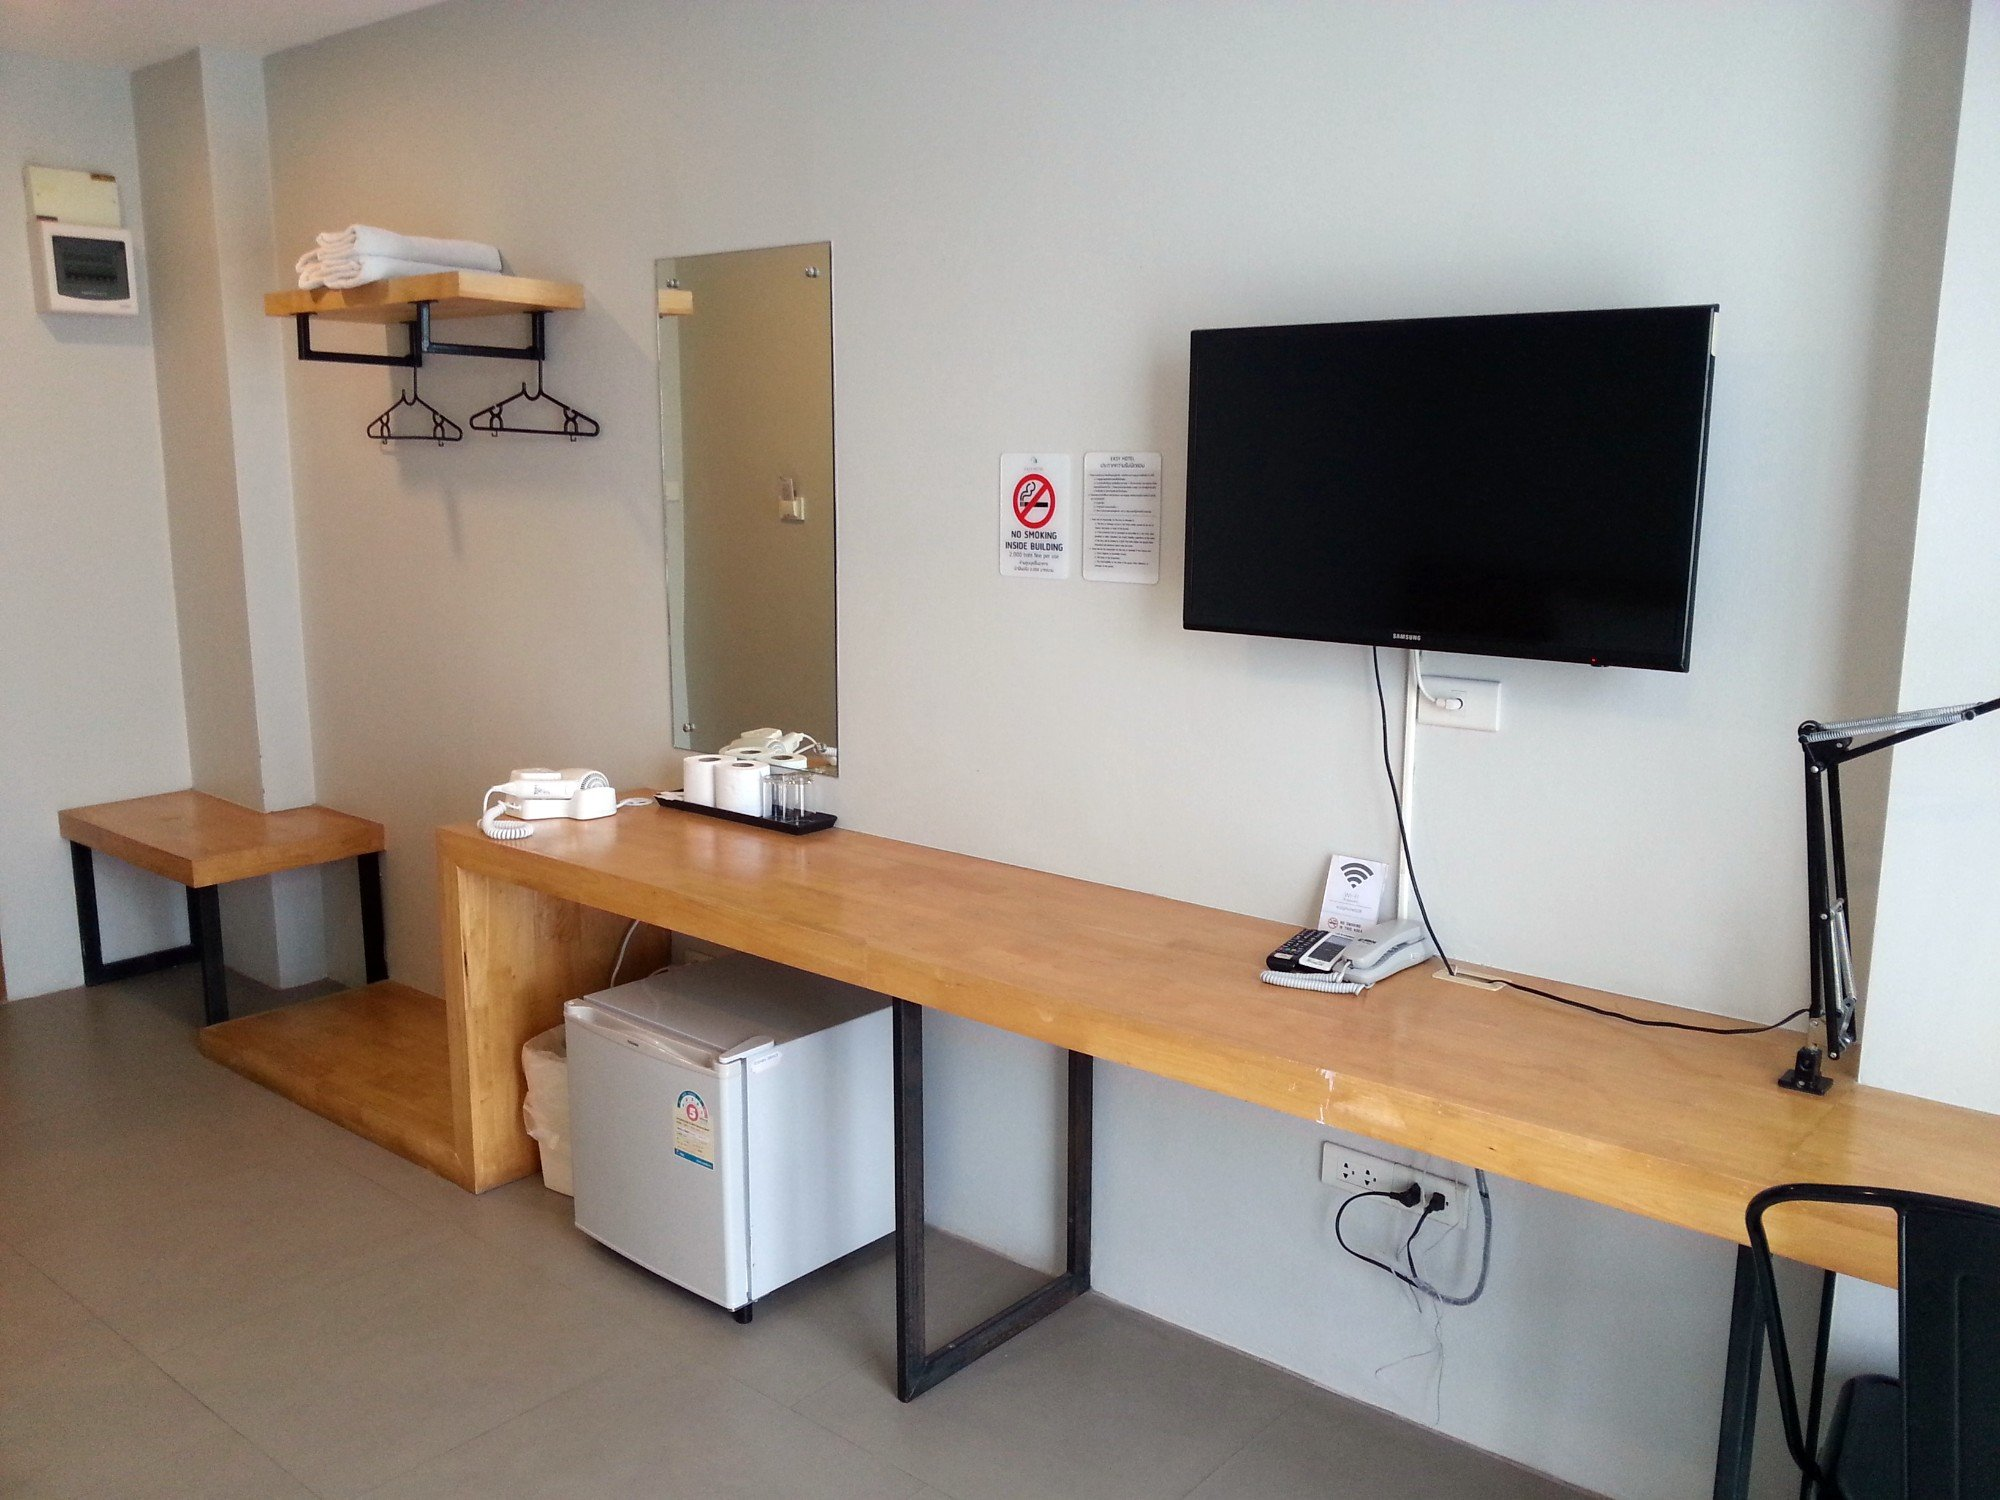 Room facilities at the Easy Hotel